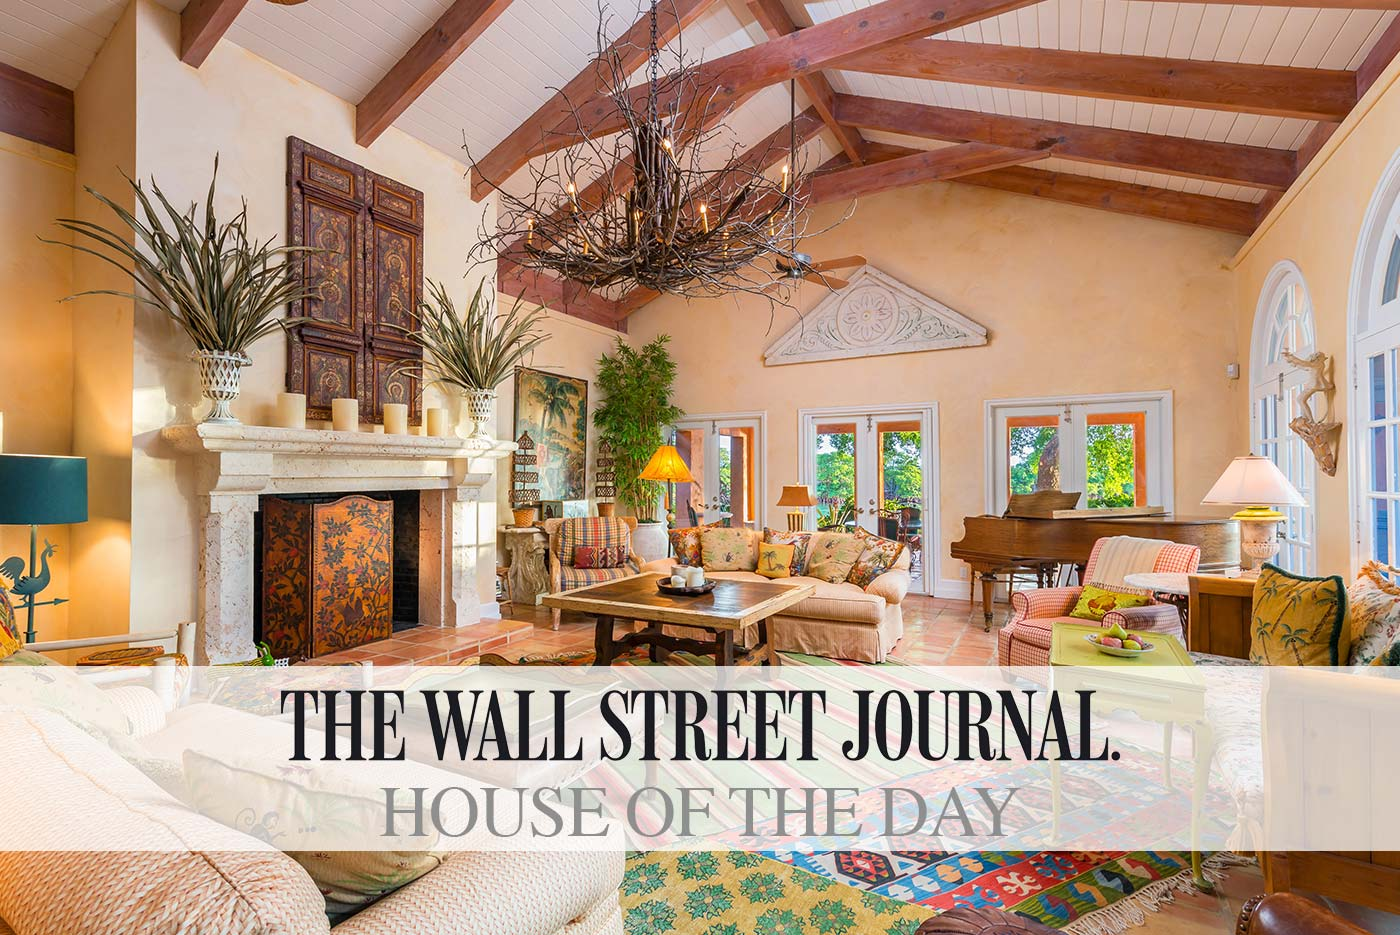 Wall street journal house of the day buena vista for Wall street journal mansion